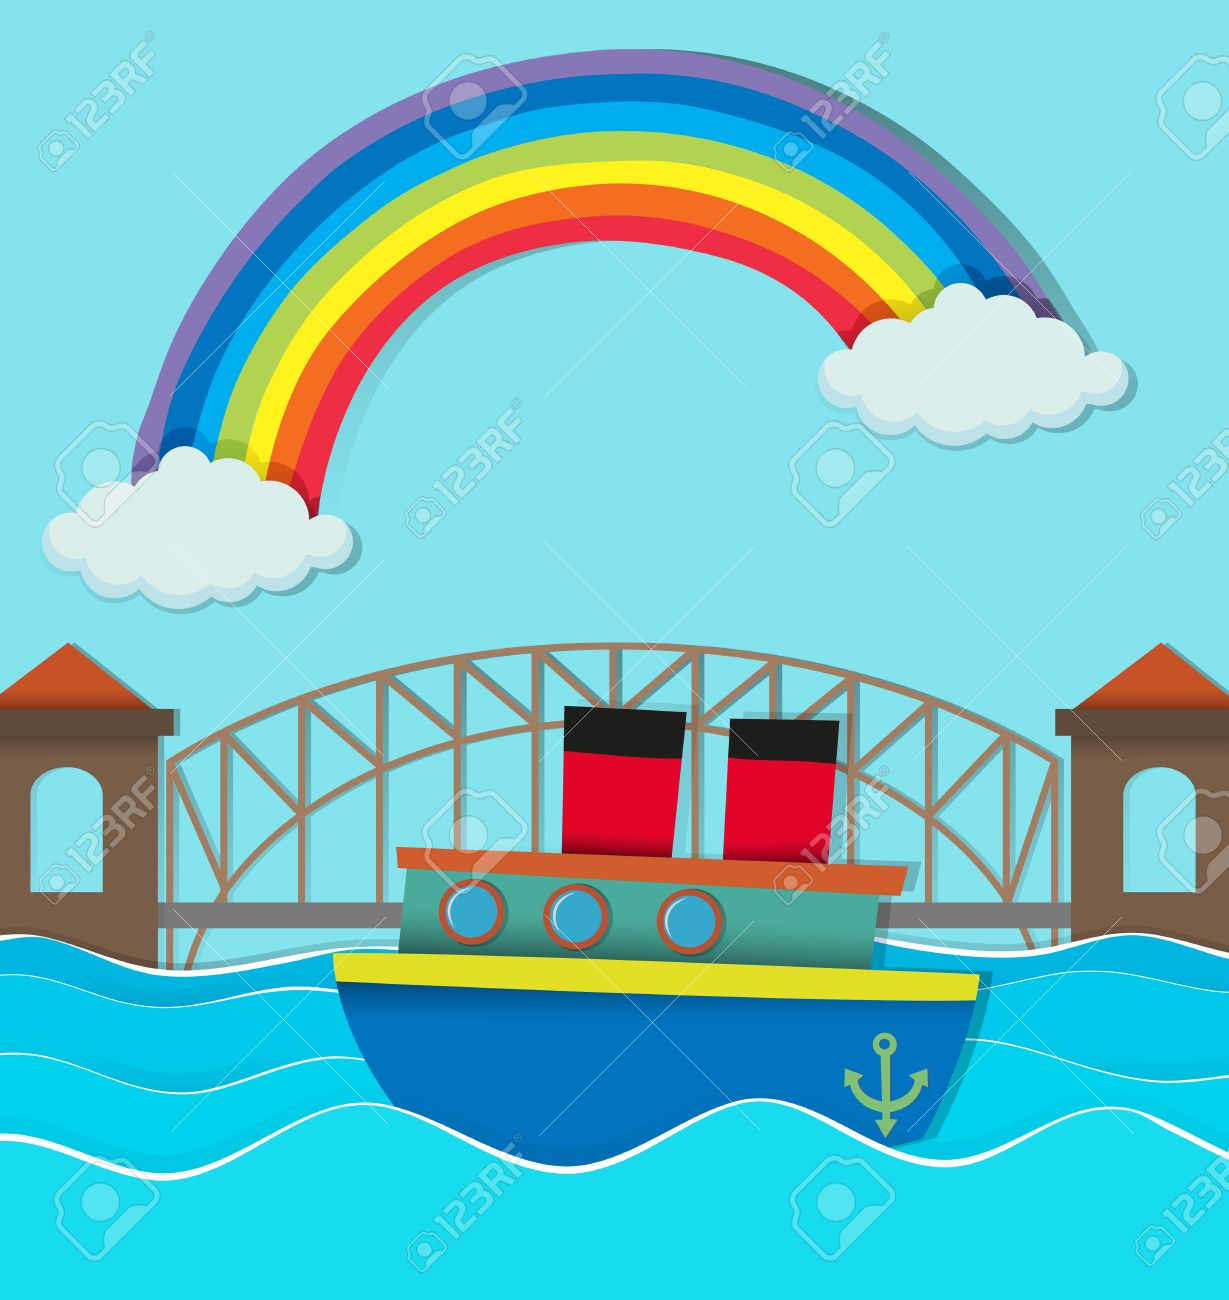 Bridge over river and boat on water illustration.